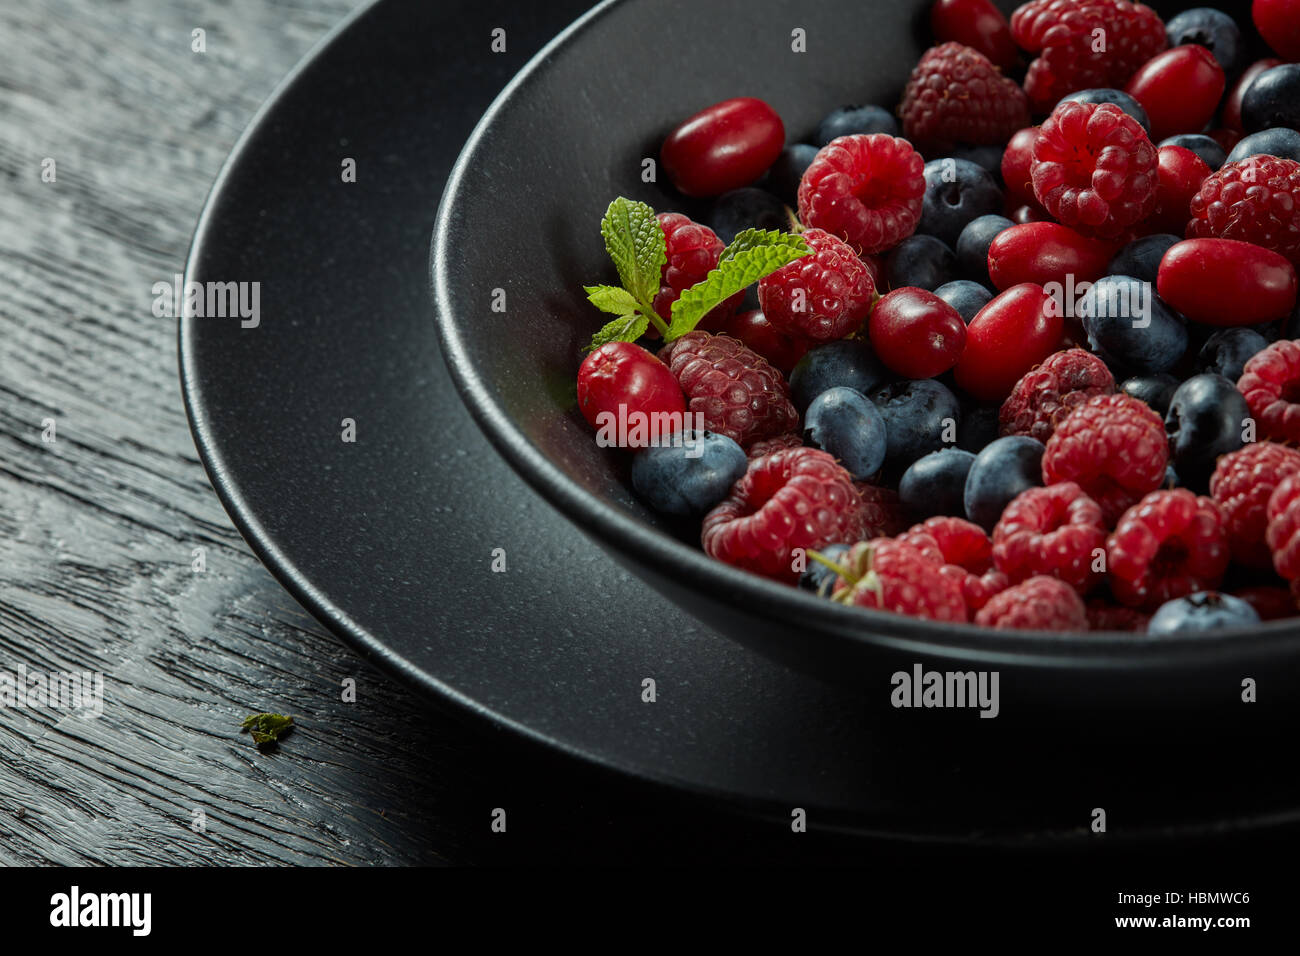 fresh healthy berries - Stock Image